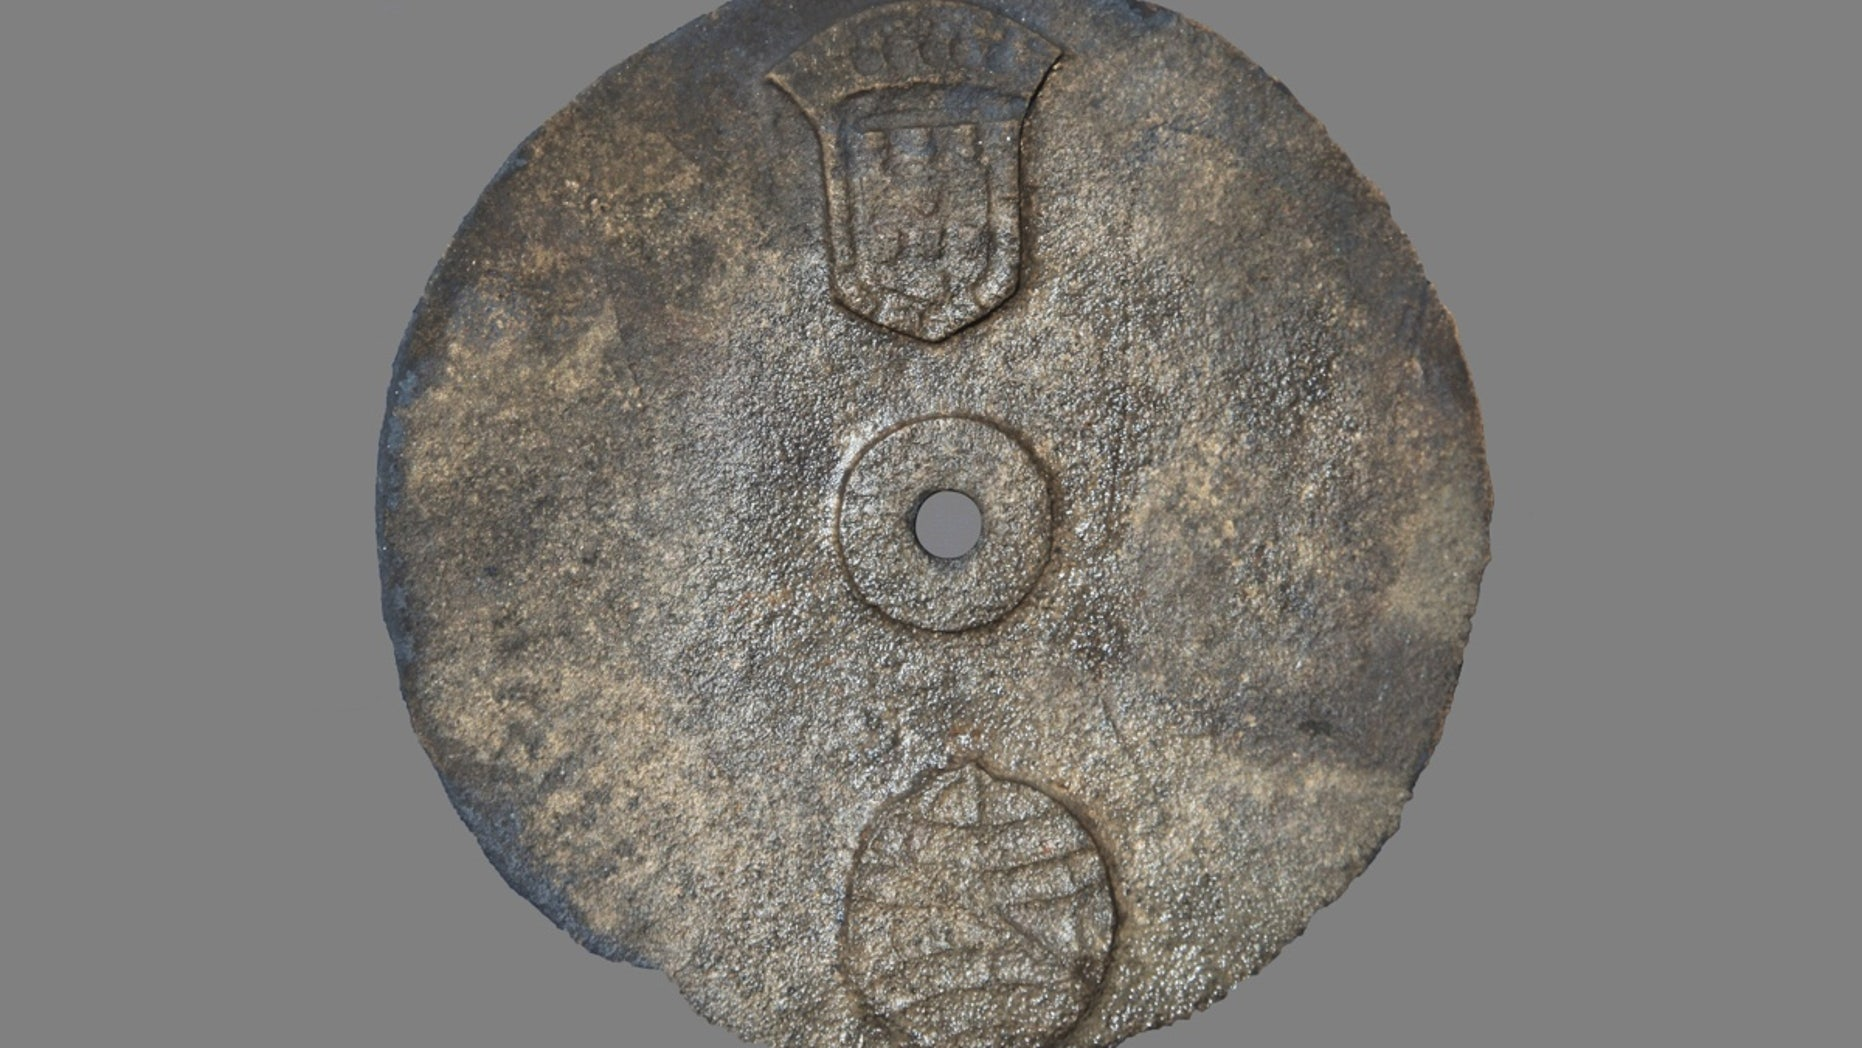 A copper alloy astrolabe found in a shipwreck in Oman dates to between 1496 and 1501, making it the oldest mariner's astrolabe ever discovered.